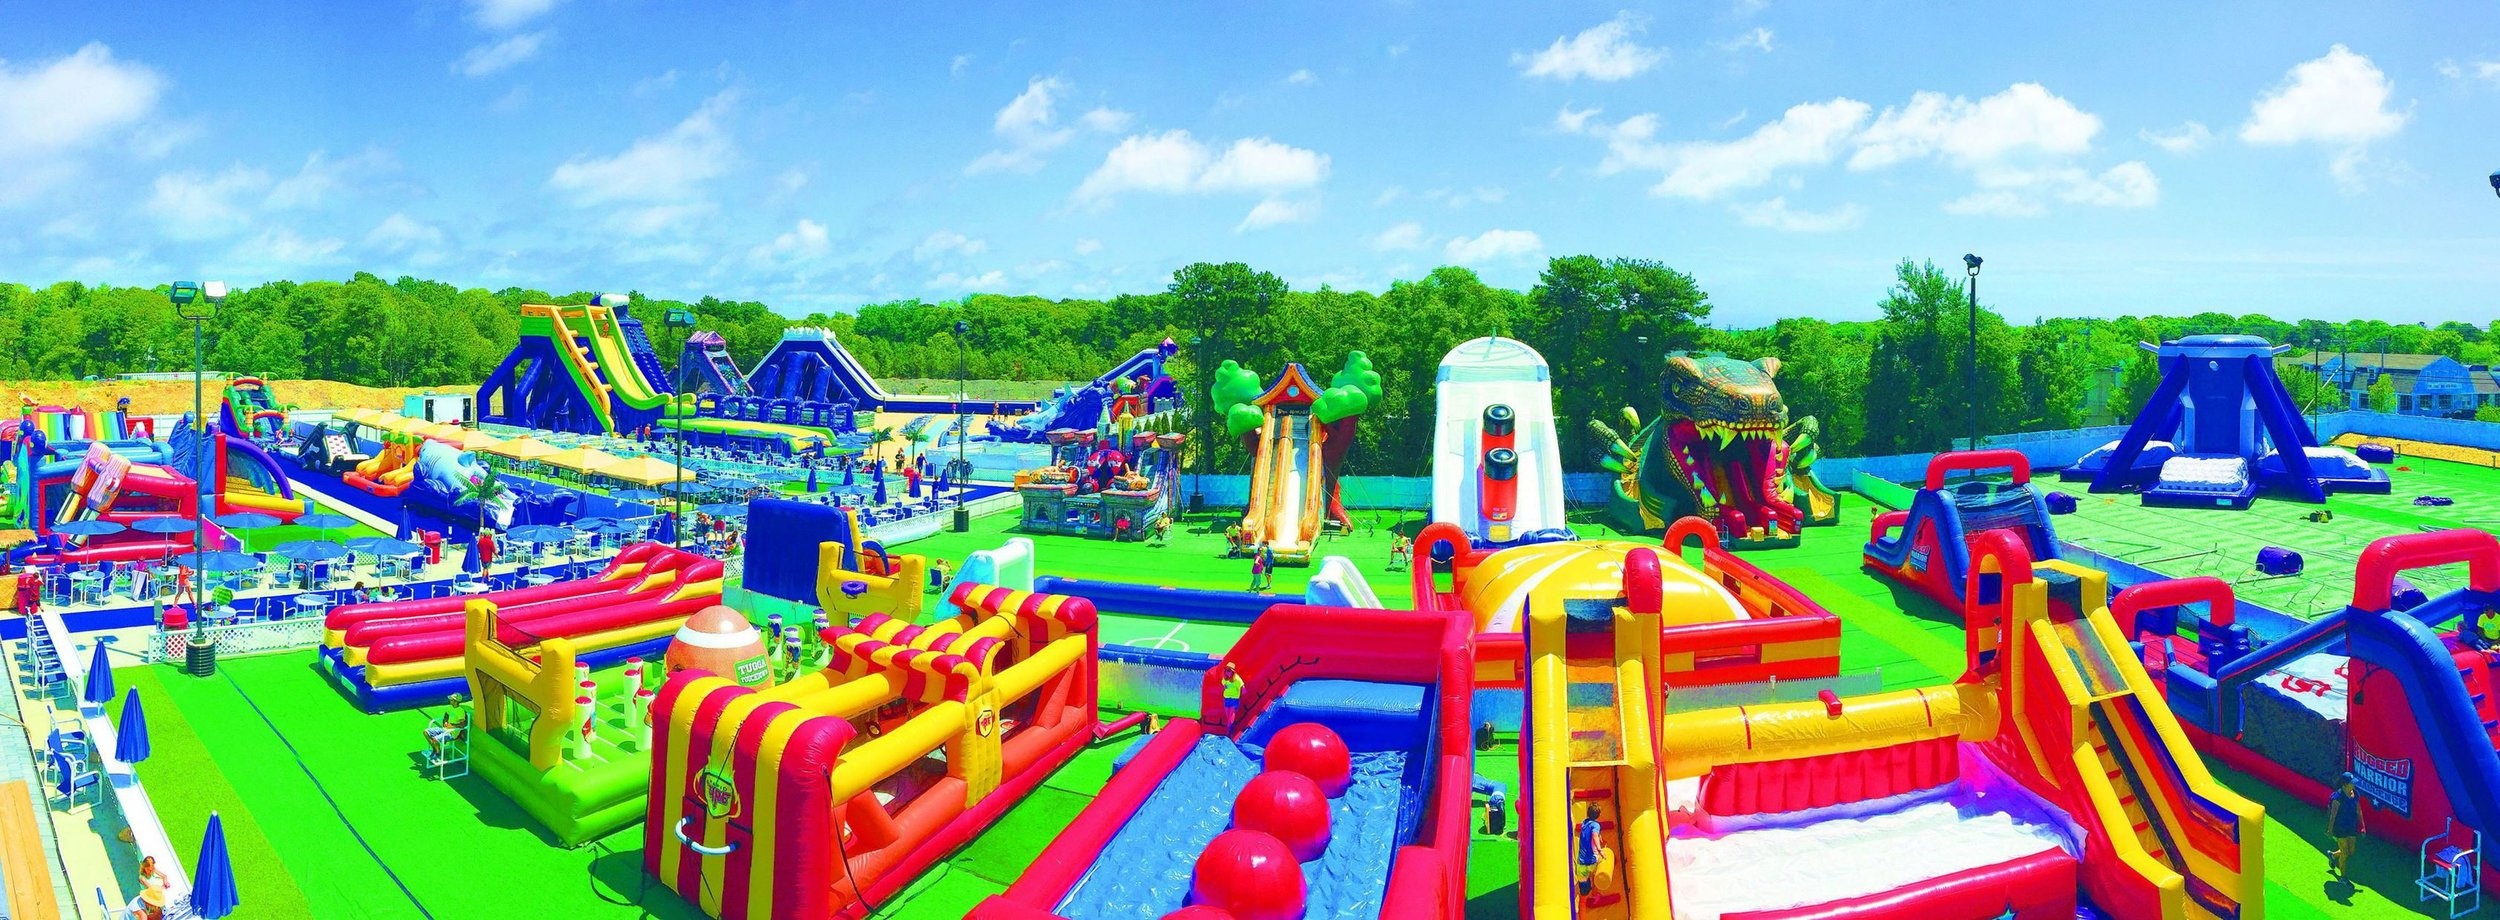 capecod inflatable park - yarmouth, ma